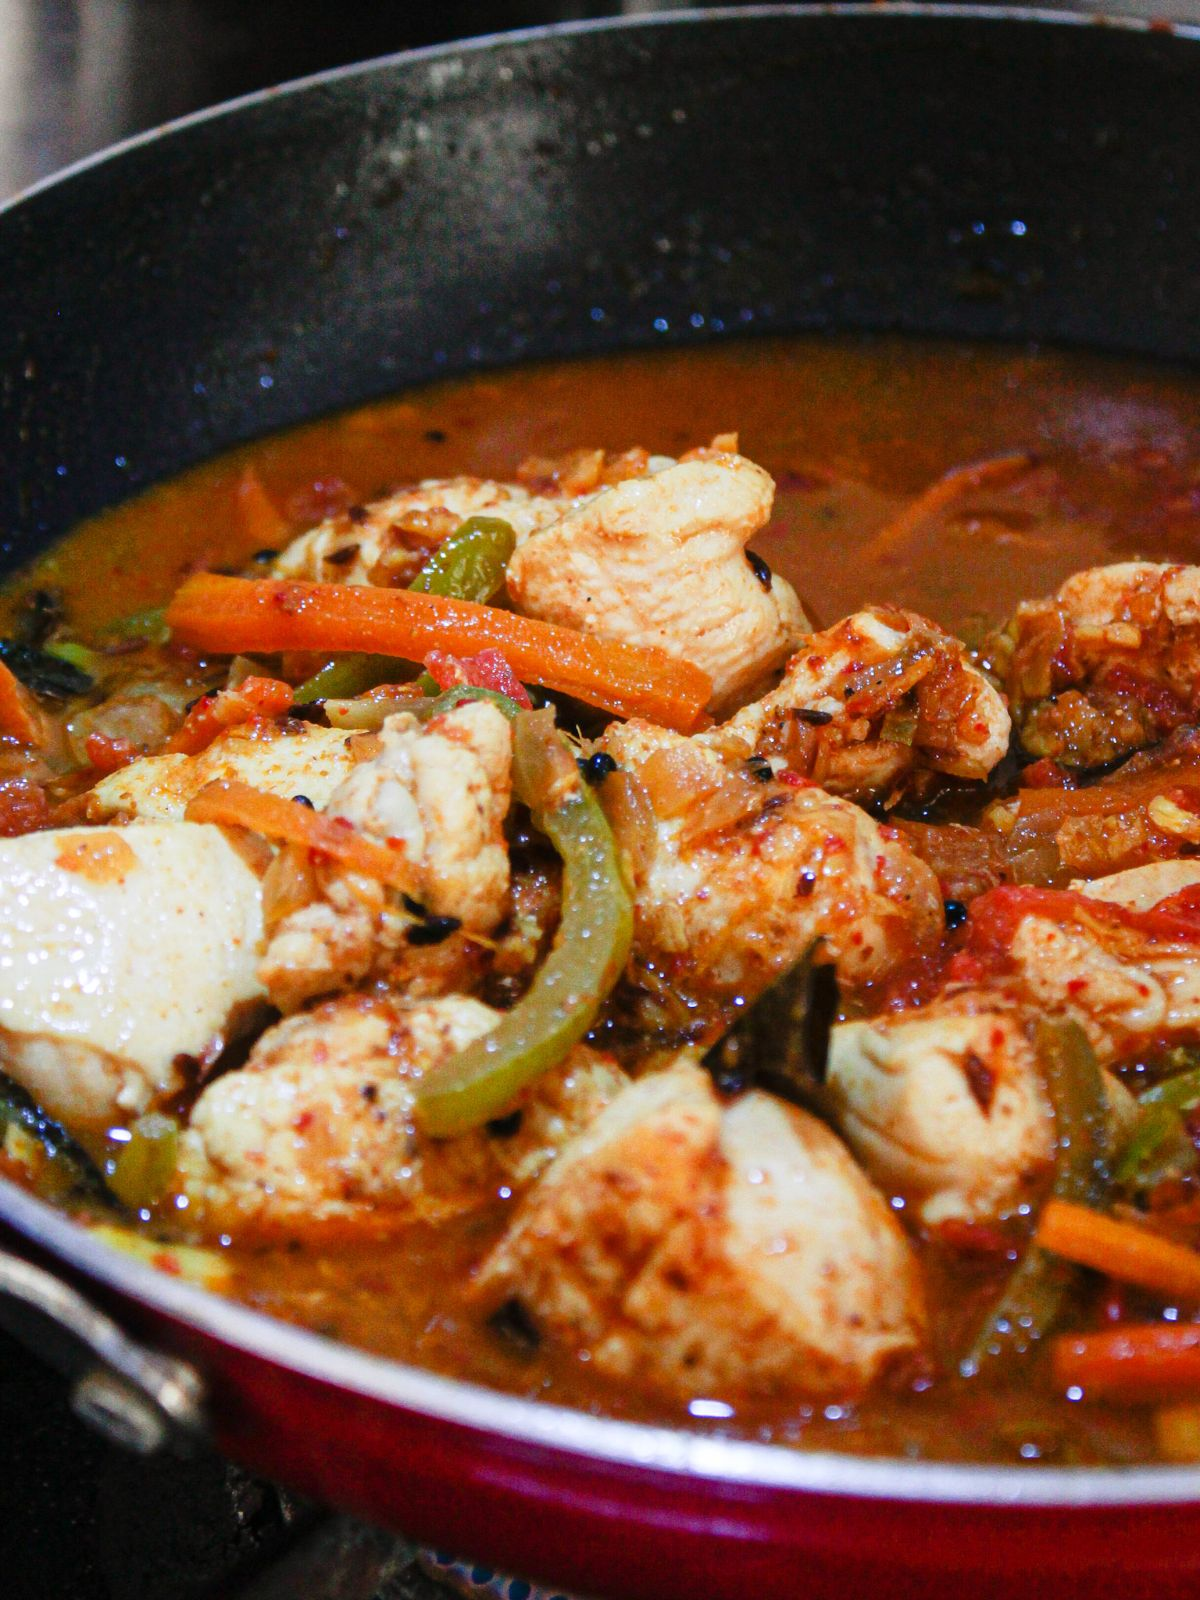 Chicken and vegetables in skillet with red sauce